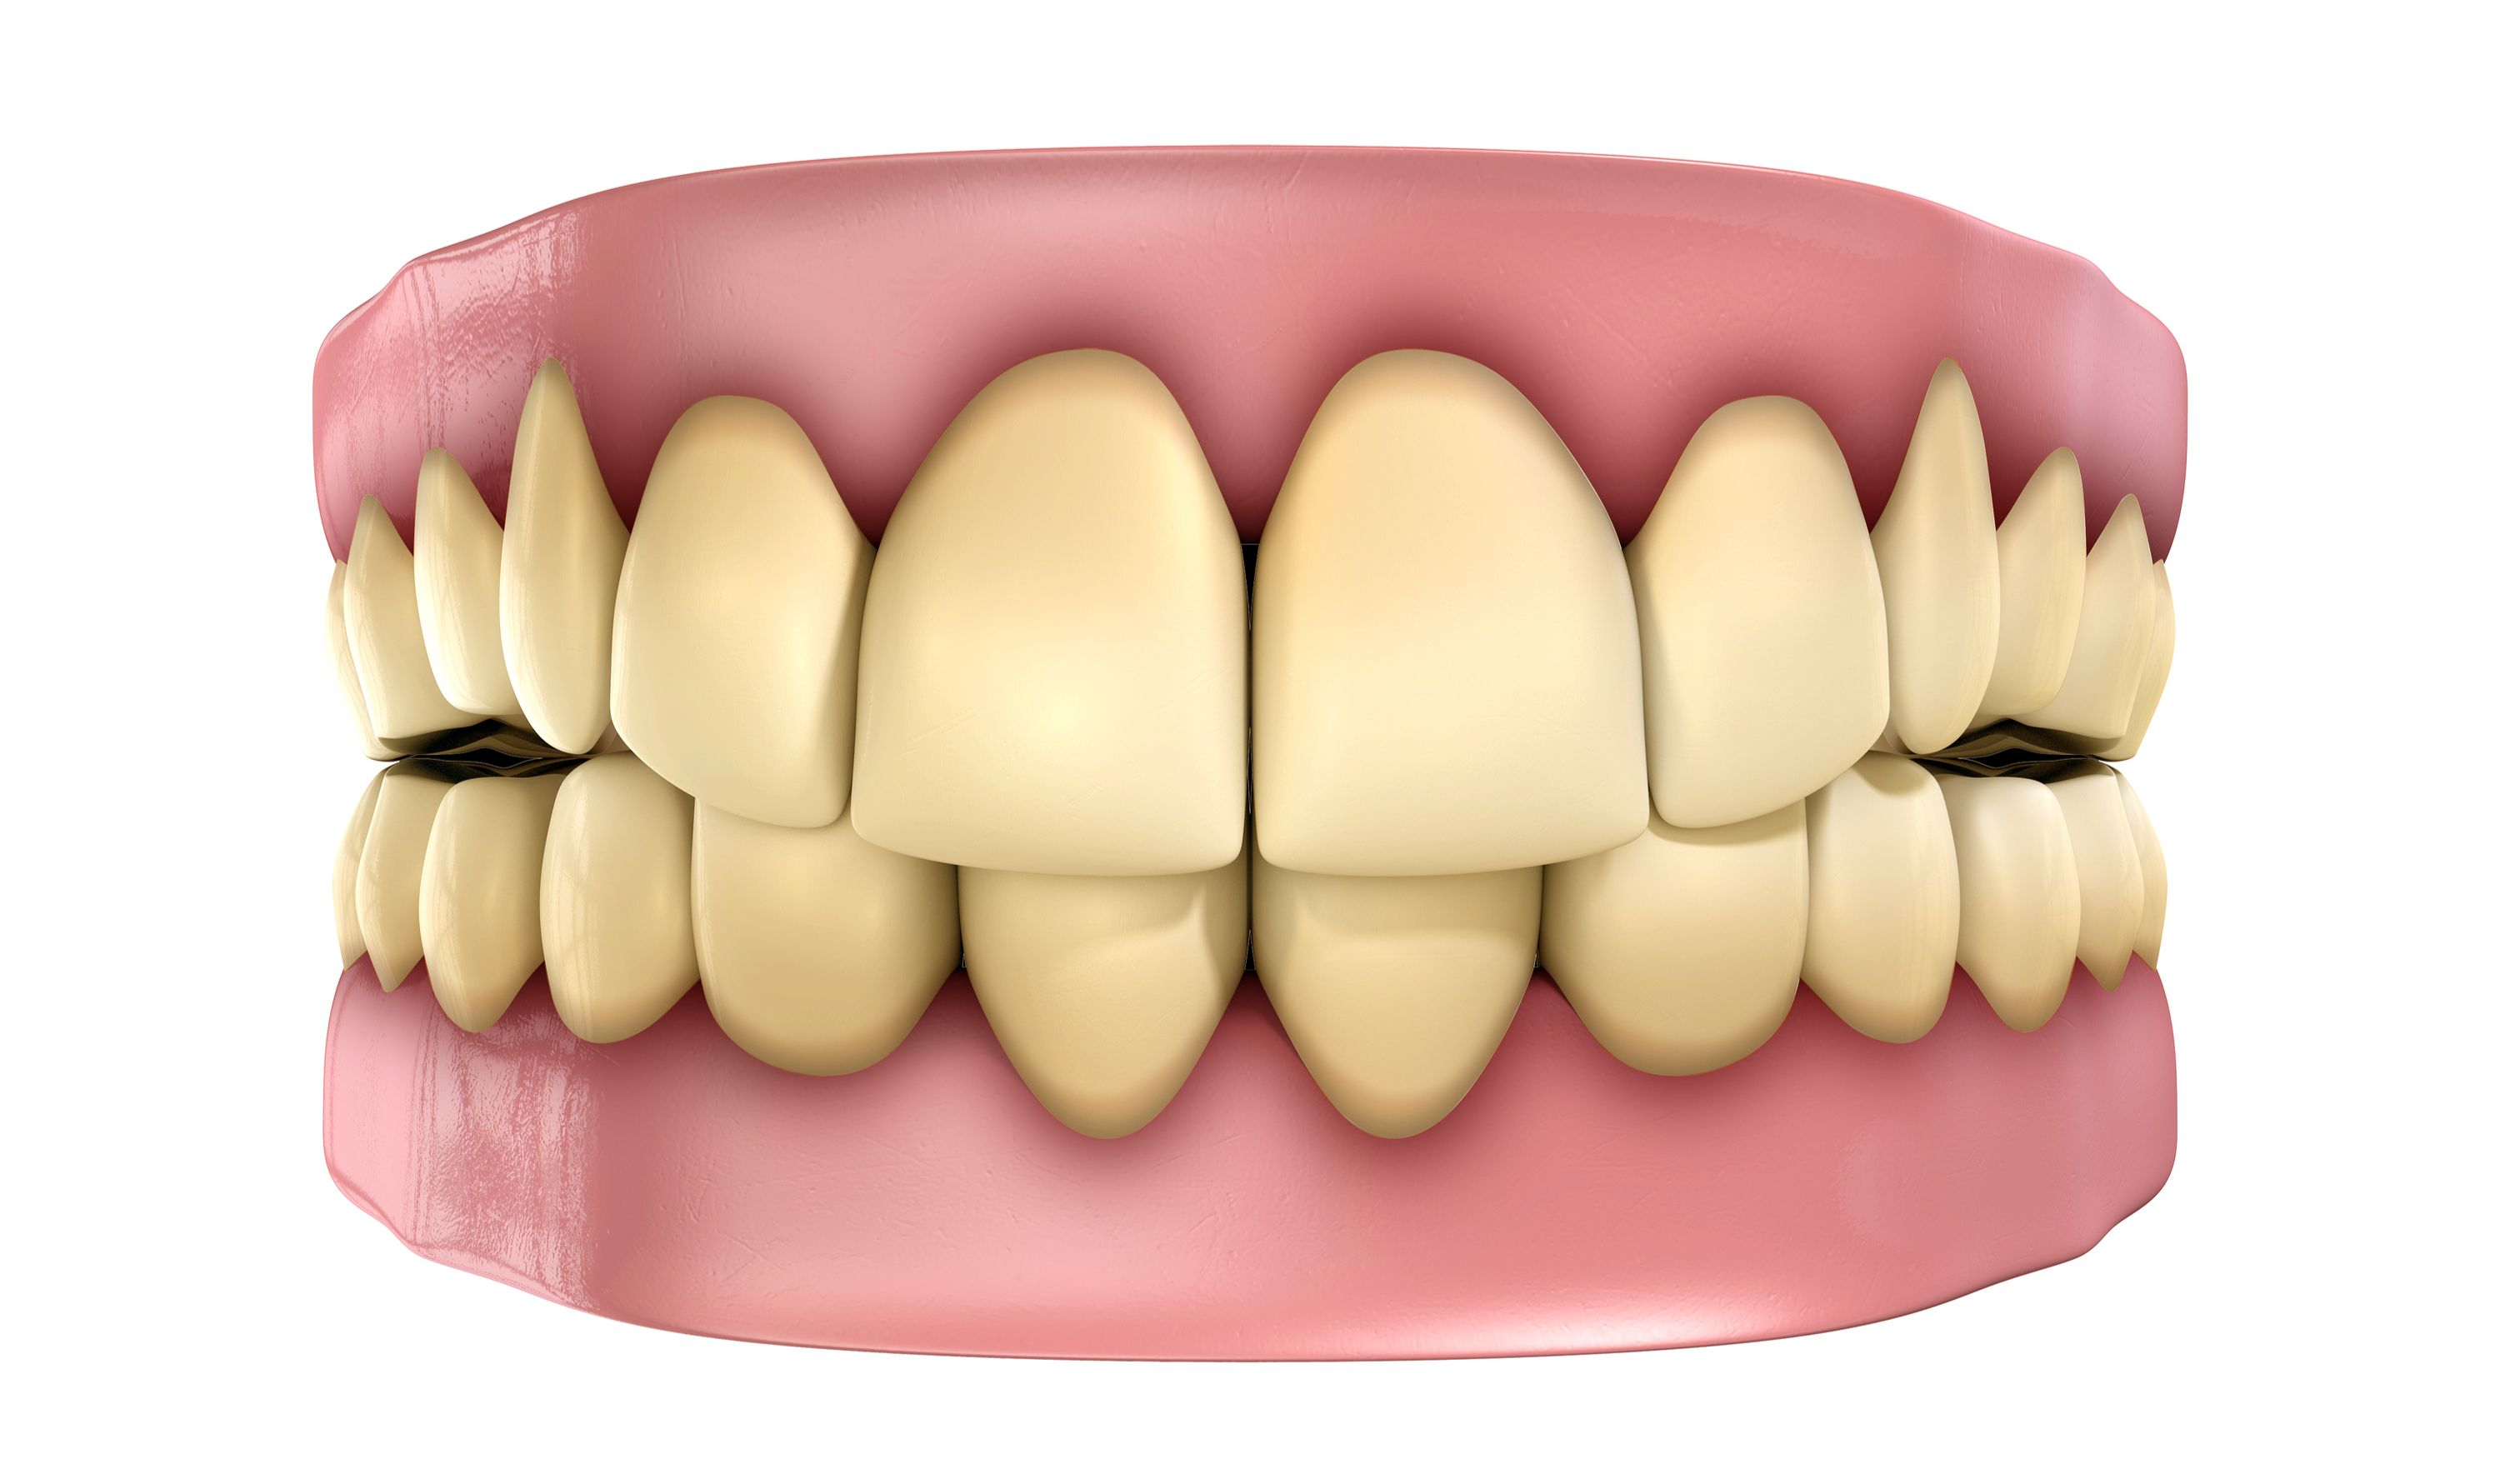 Illustration of discolored teeth